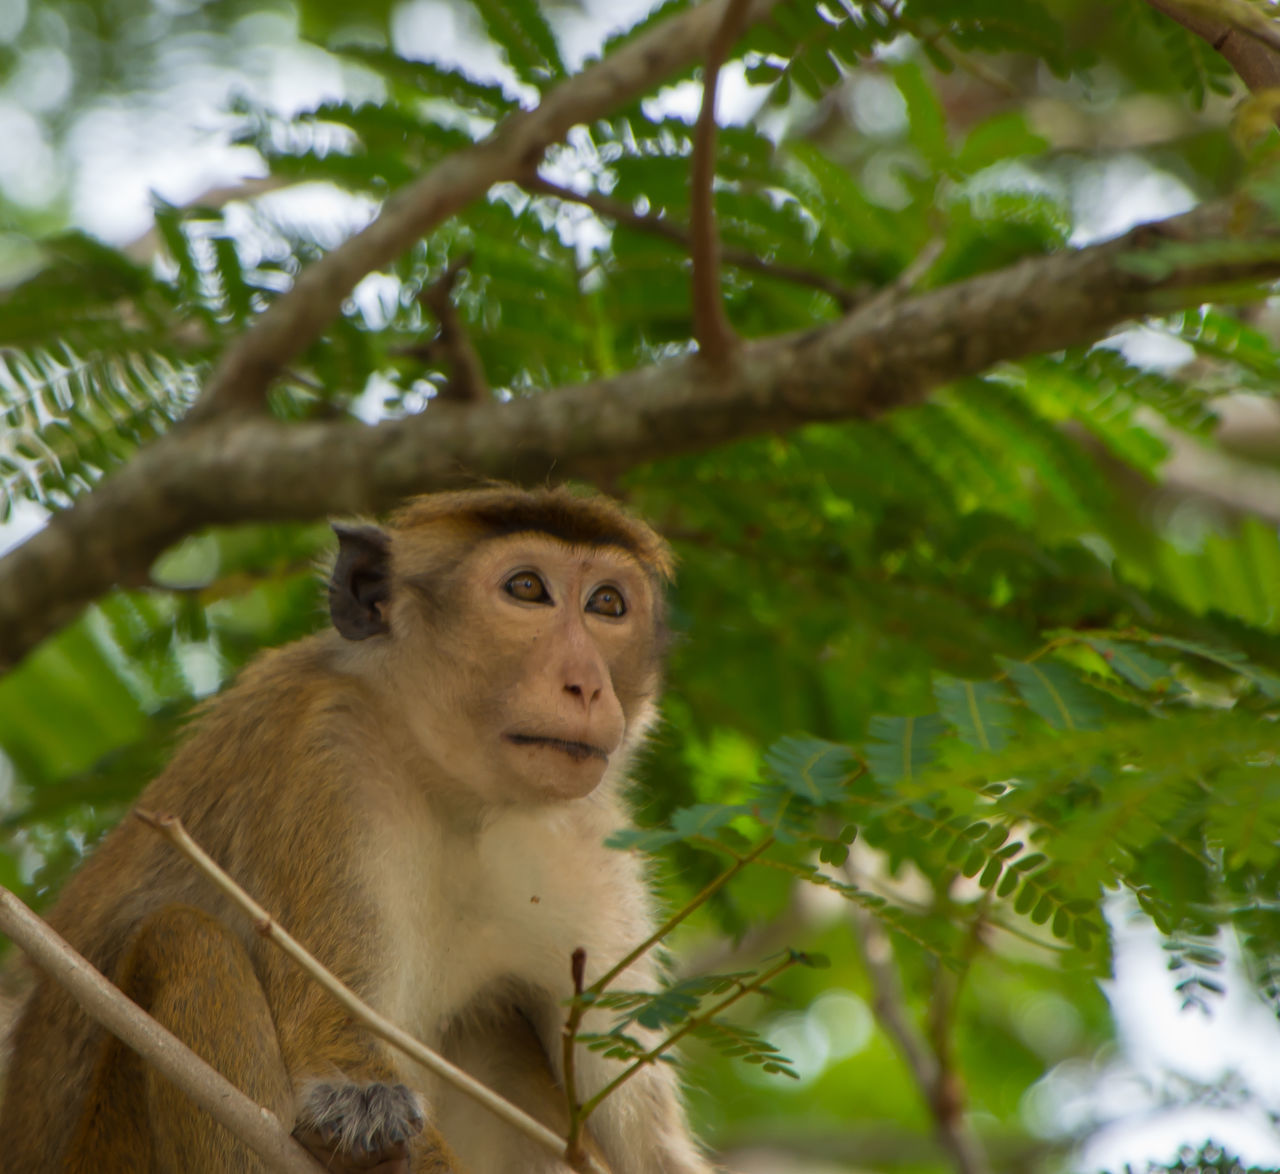 animals in the wild, mammal, wildlife, one animal, animal themes, tree, monkey, no people, day, outdoors, nature